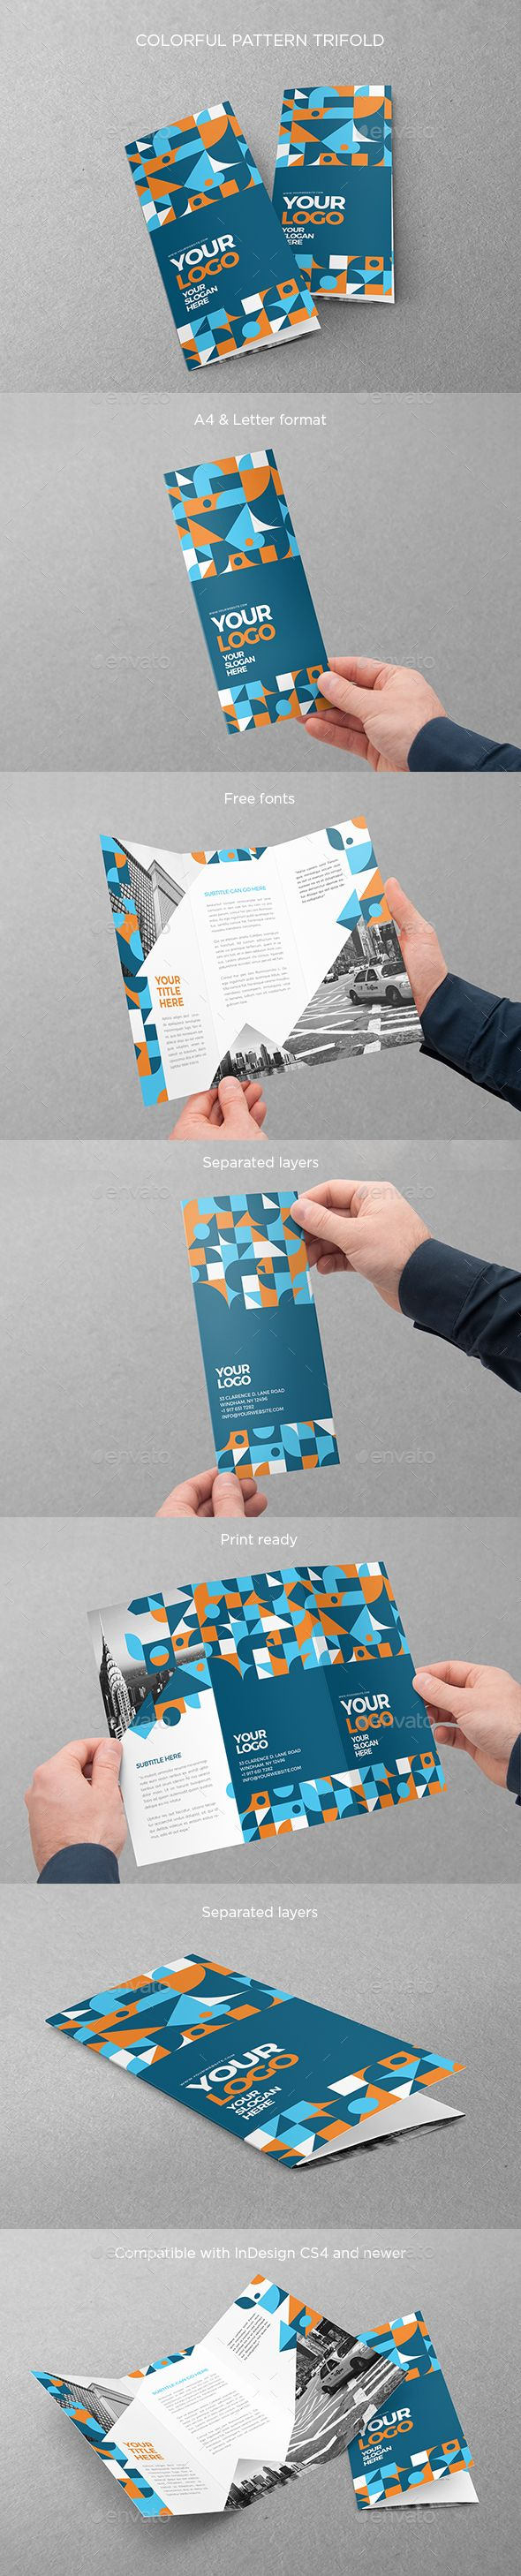 Colorful Pattern Brochure Trifold Design Template - Brochures Print Template InDesign INDD. Download here: https://graphicriver.net/item/colorful-pattern-trifold/19307526?ref=yinkira